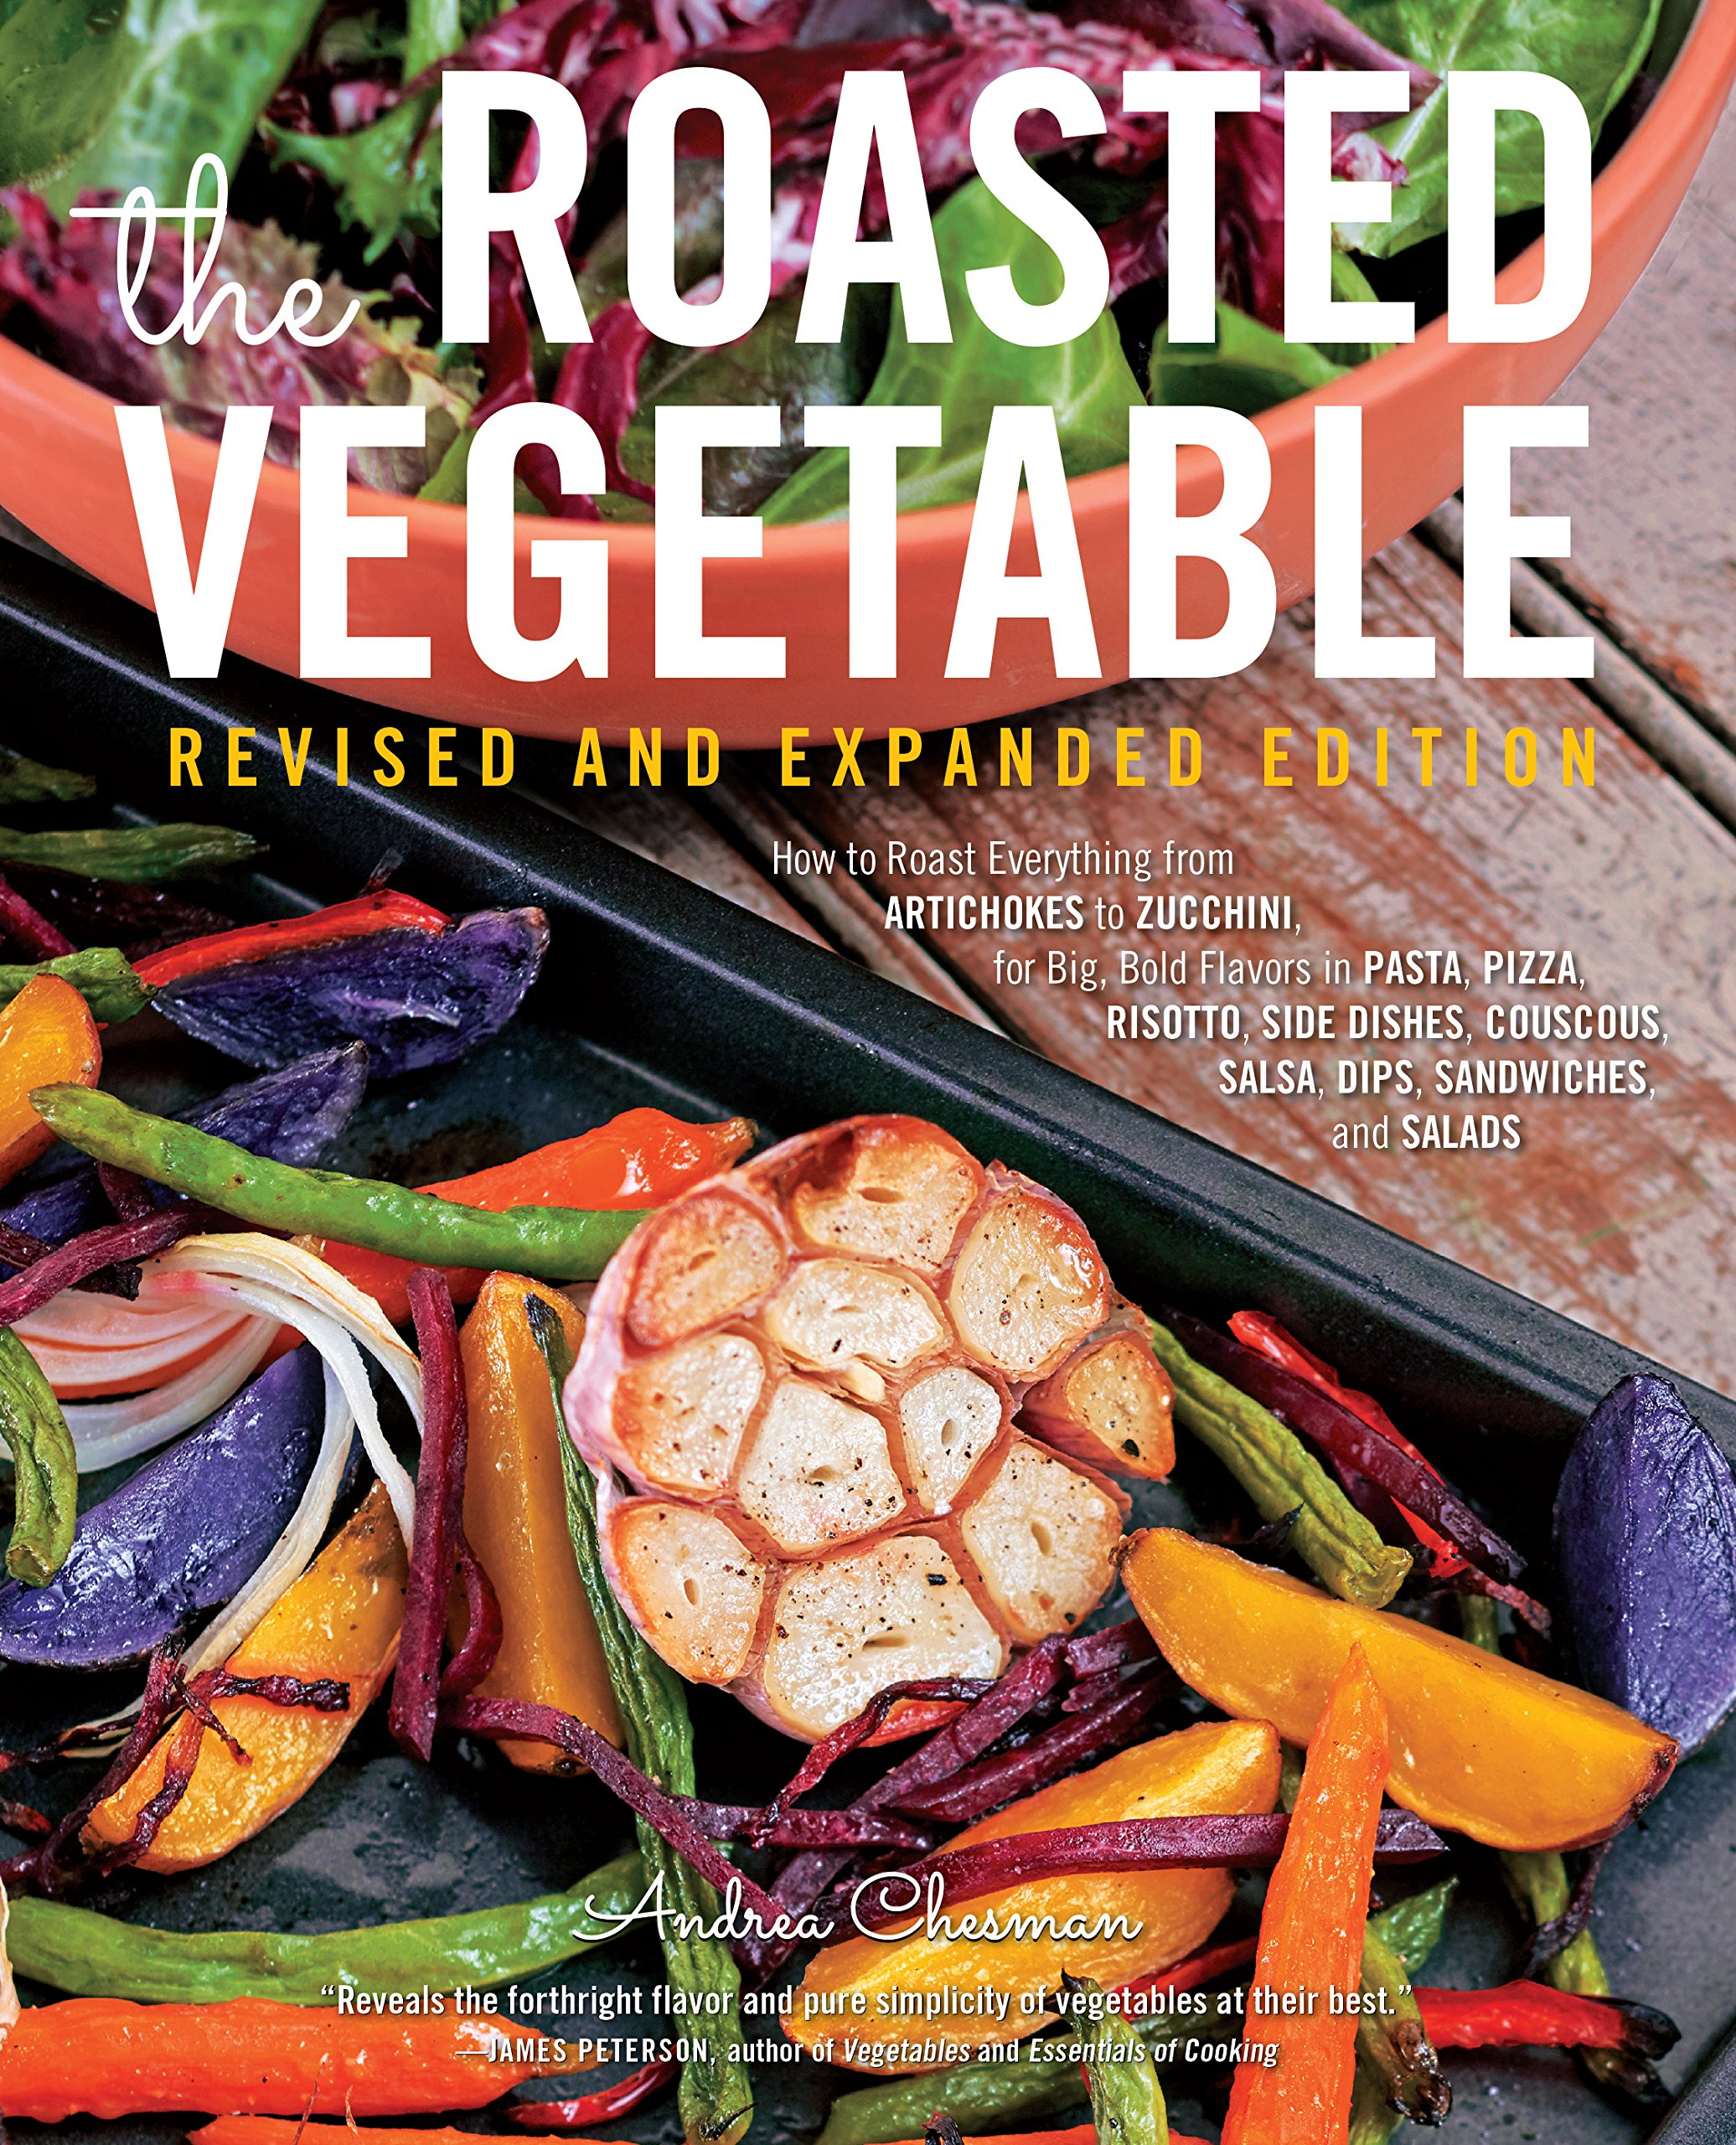 The Roasted Vegetable, Revised Edition: How to Roast Everything from Artichokes to Zucchini, for Big, Bold Flavors in Pasta, Pizza, Risotto, Side Dishes, ...